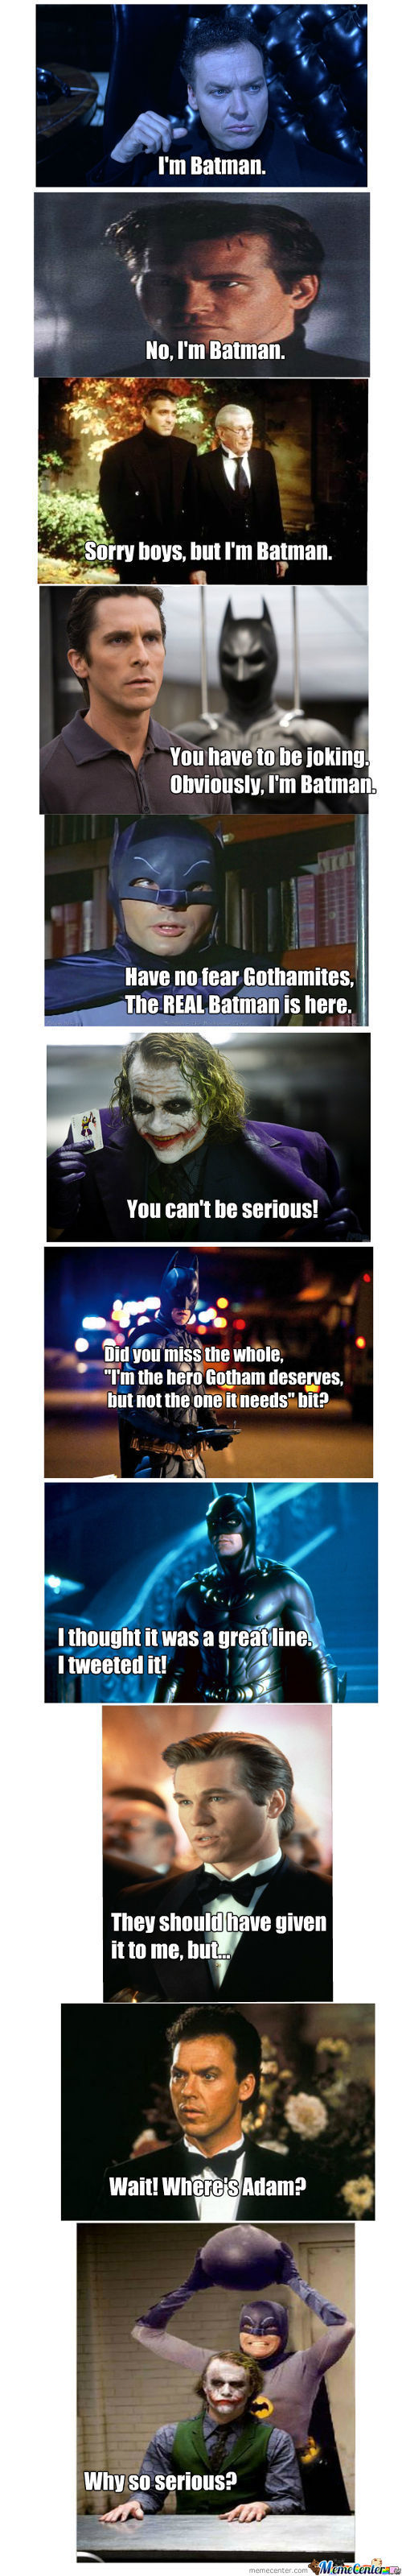 Batman Debate